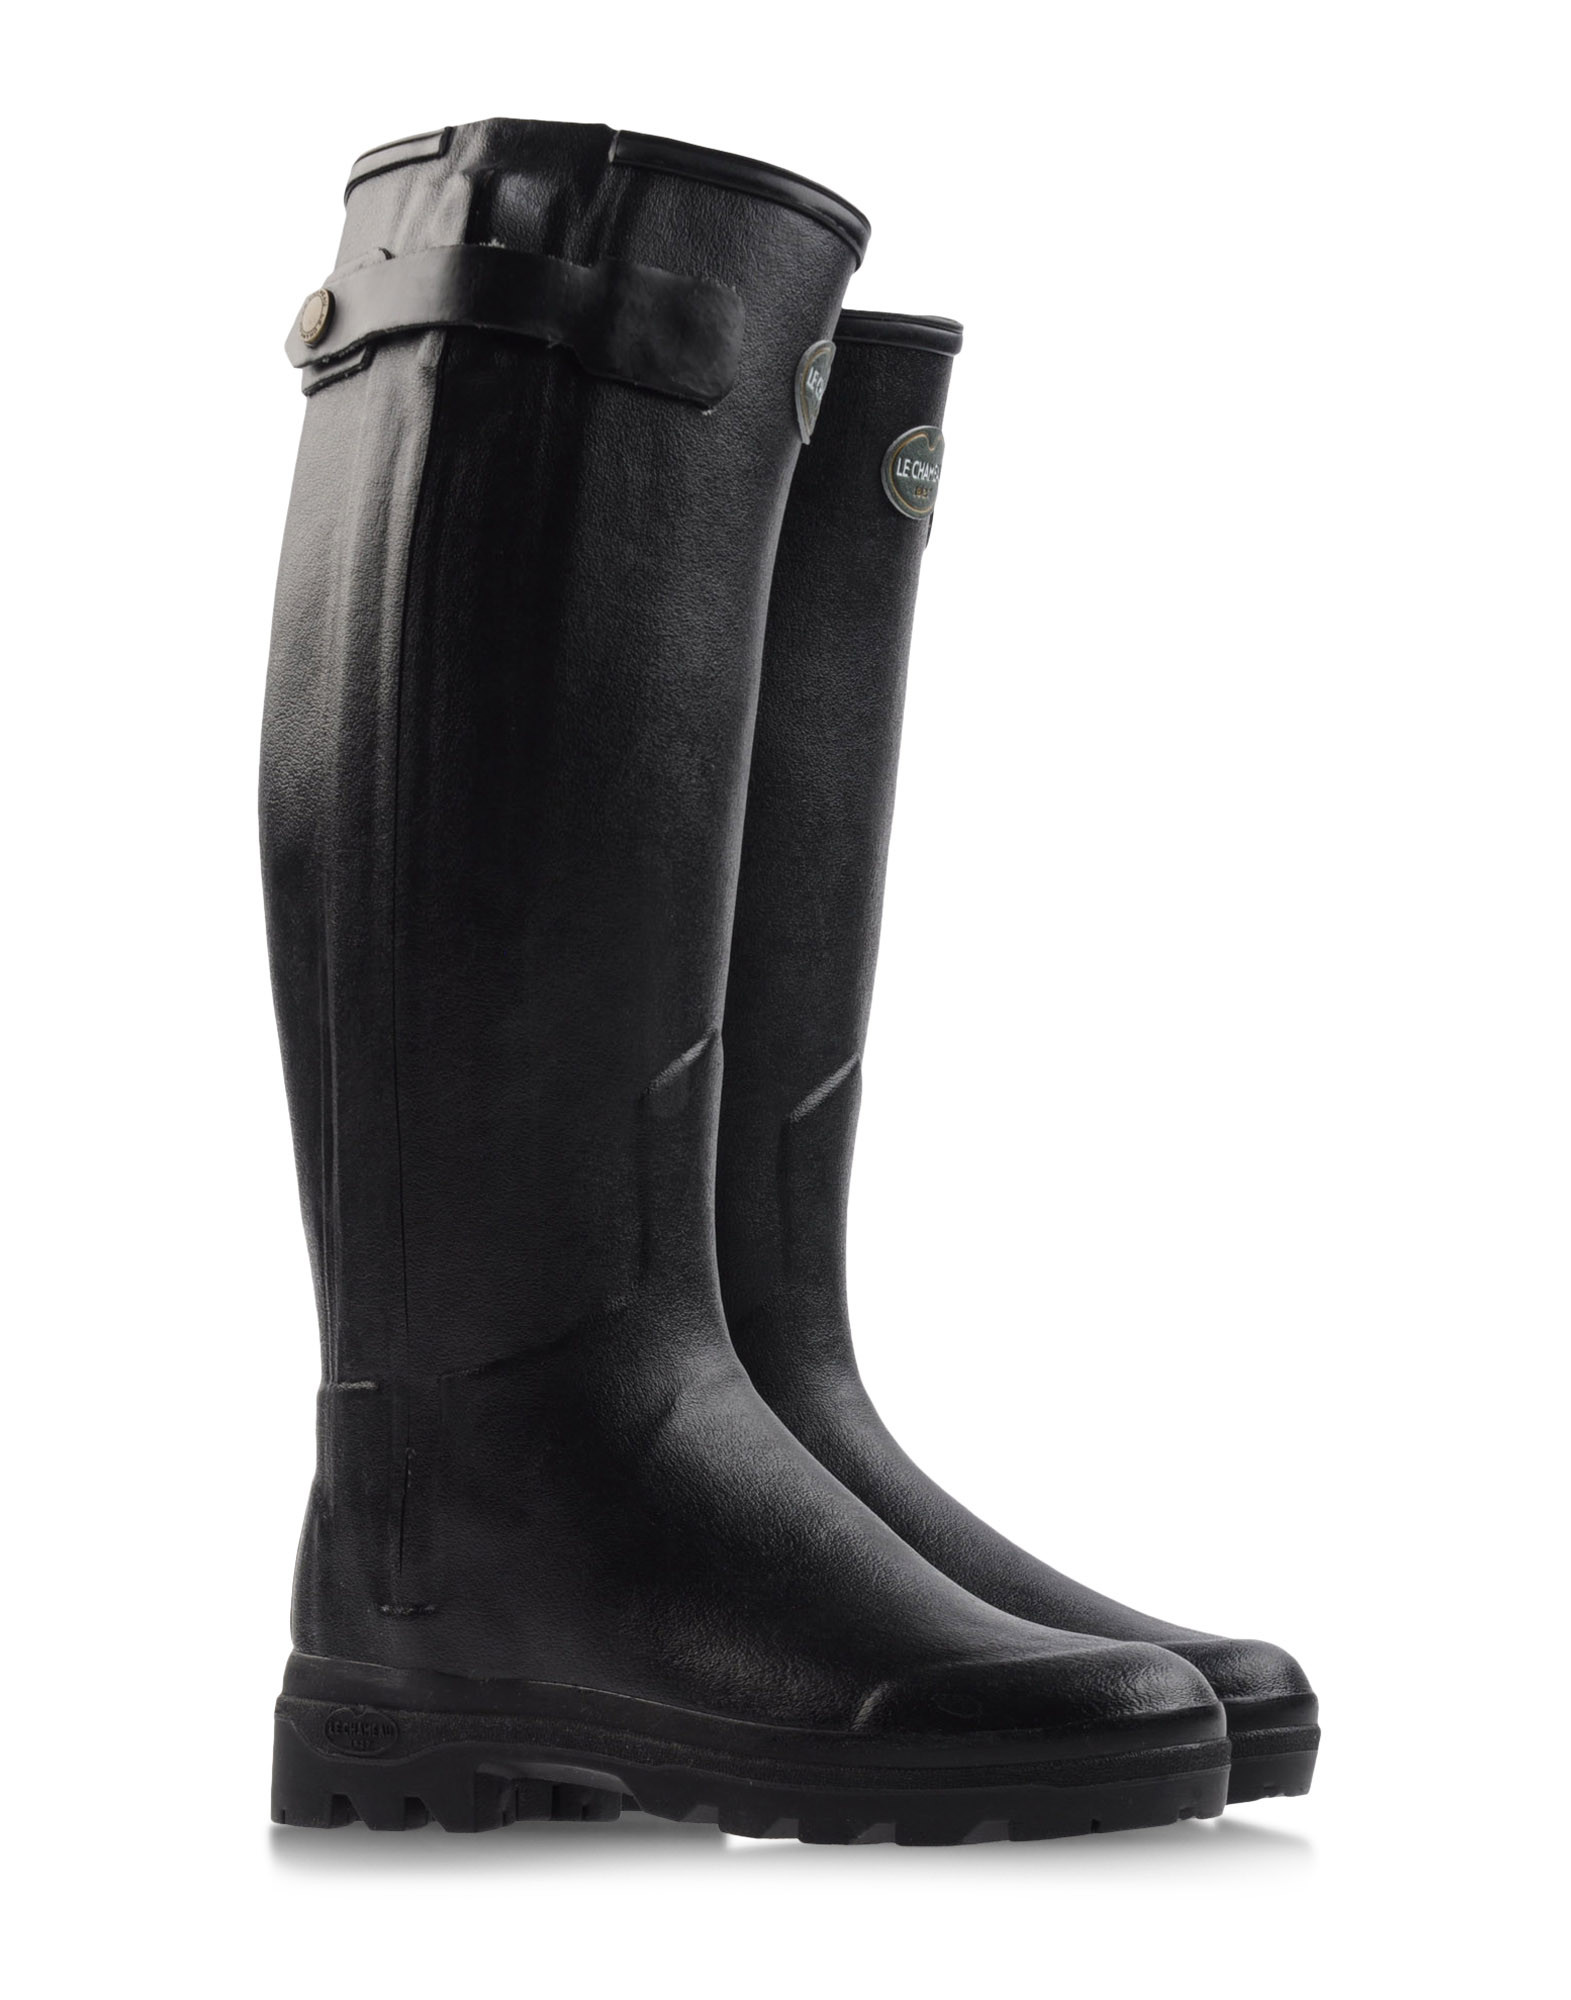 Le Chameau Rainboots Wellies In Black Lyst